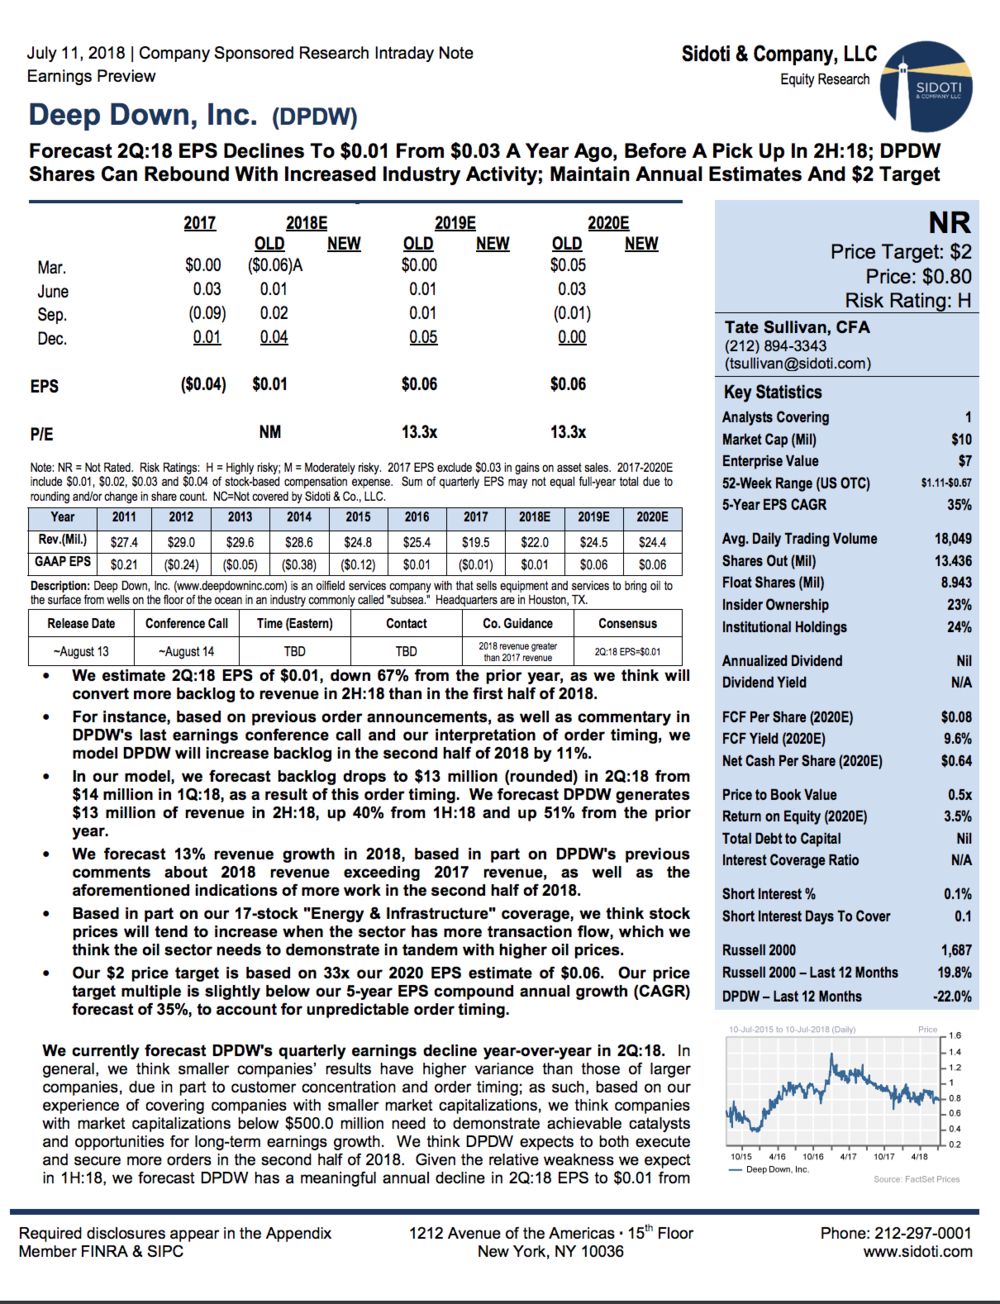 Earnings Preview: July 11, 2018